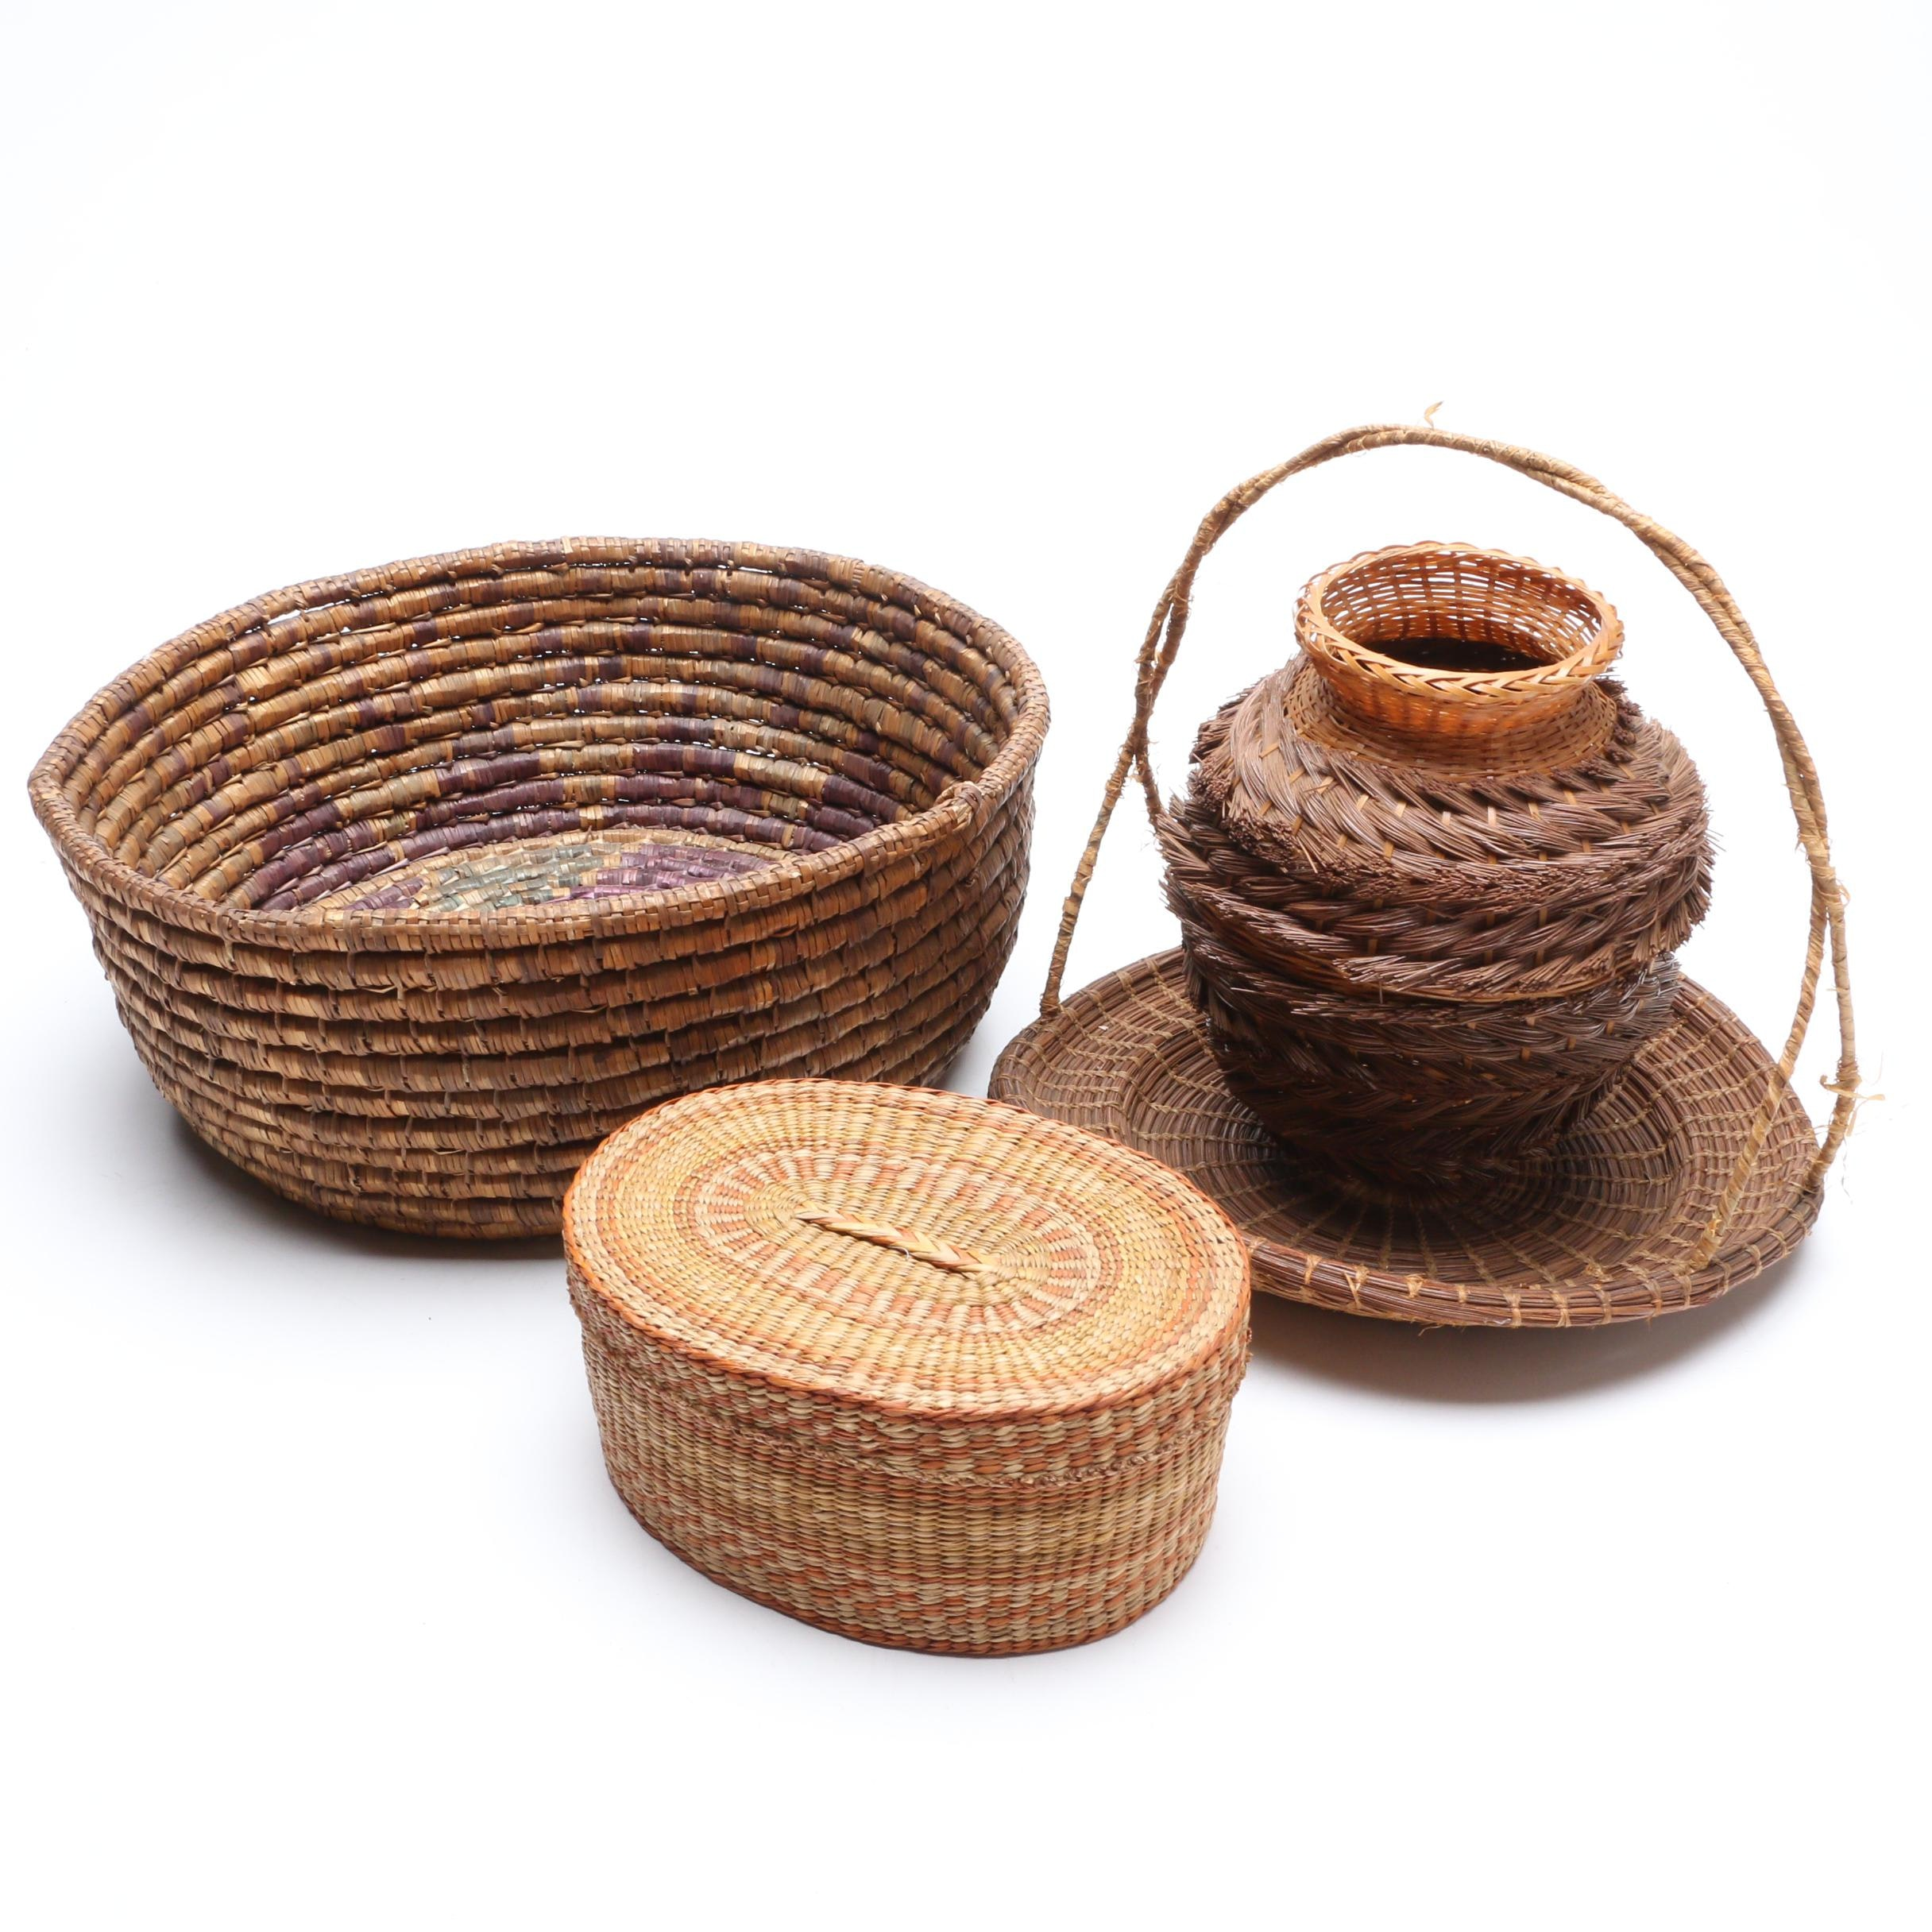 Native American Style Coil and Pine Needle Baskets with Lidded Oval Basket